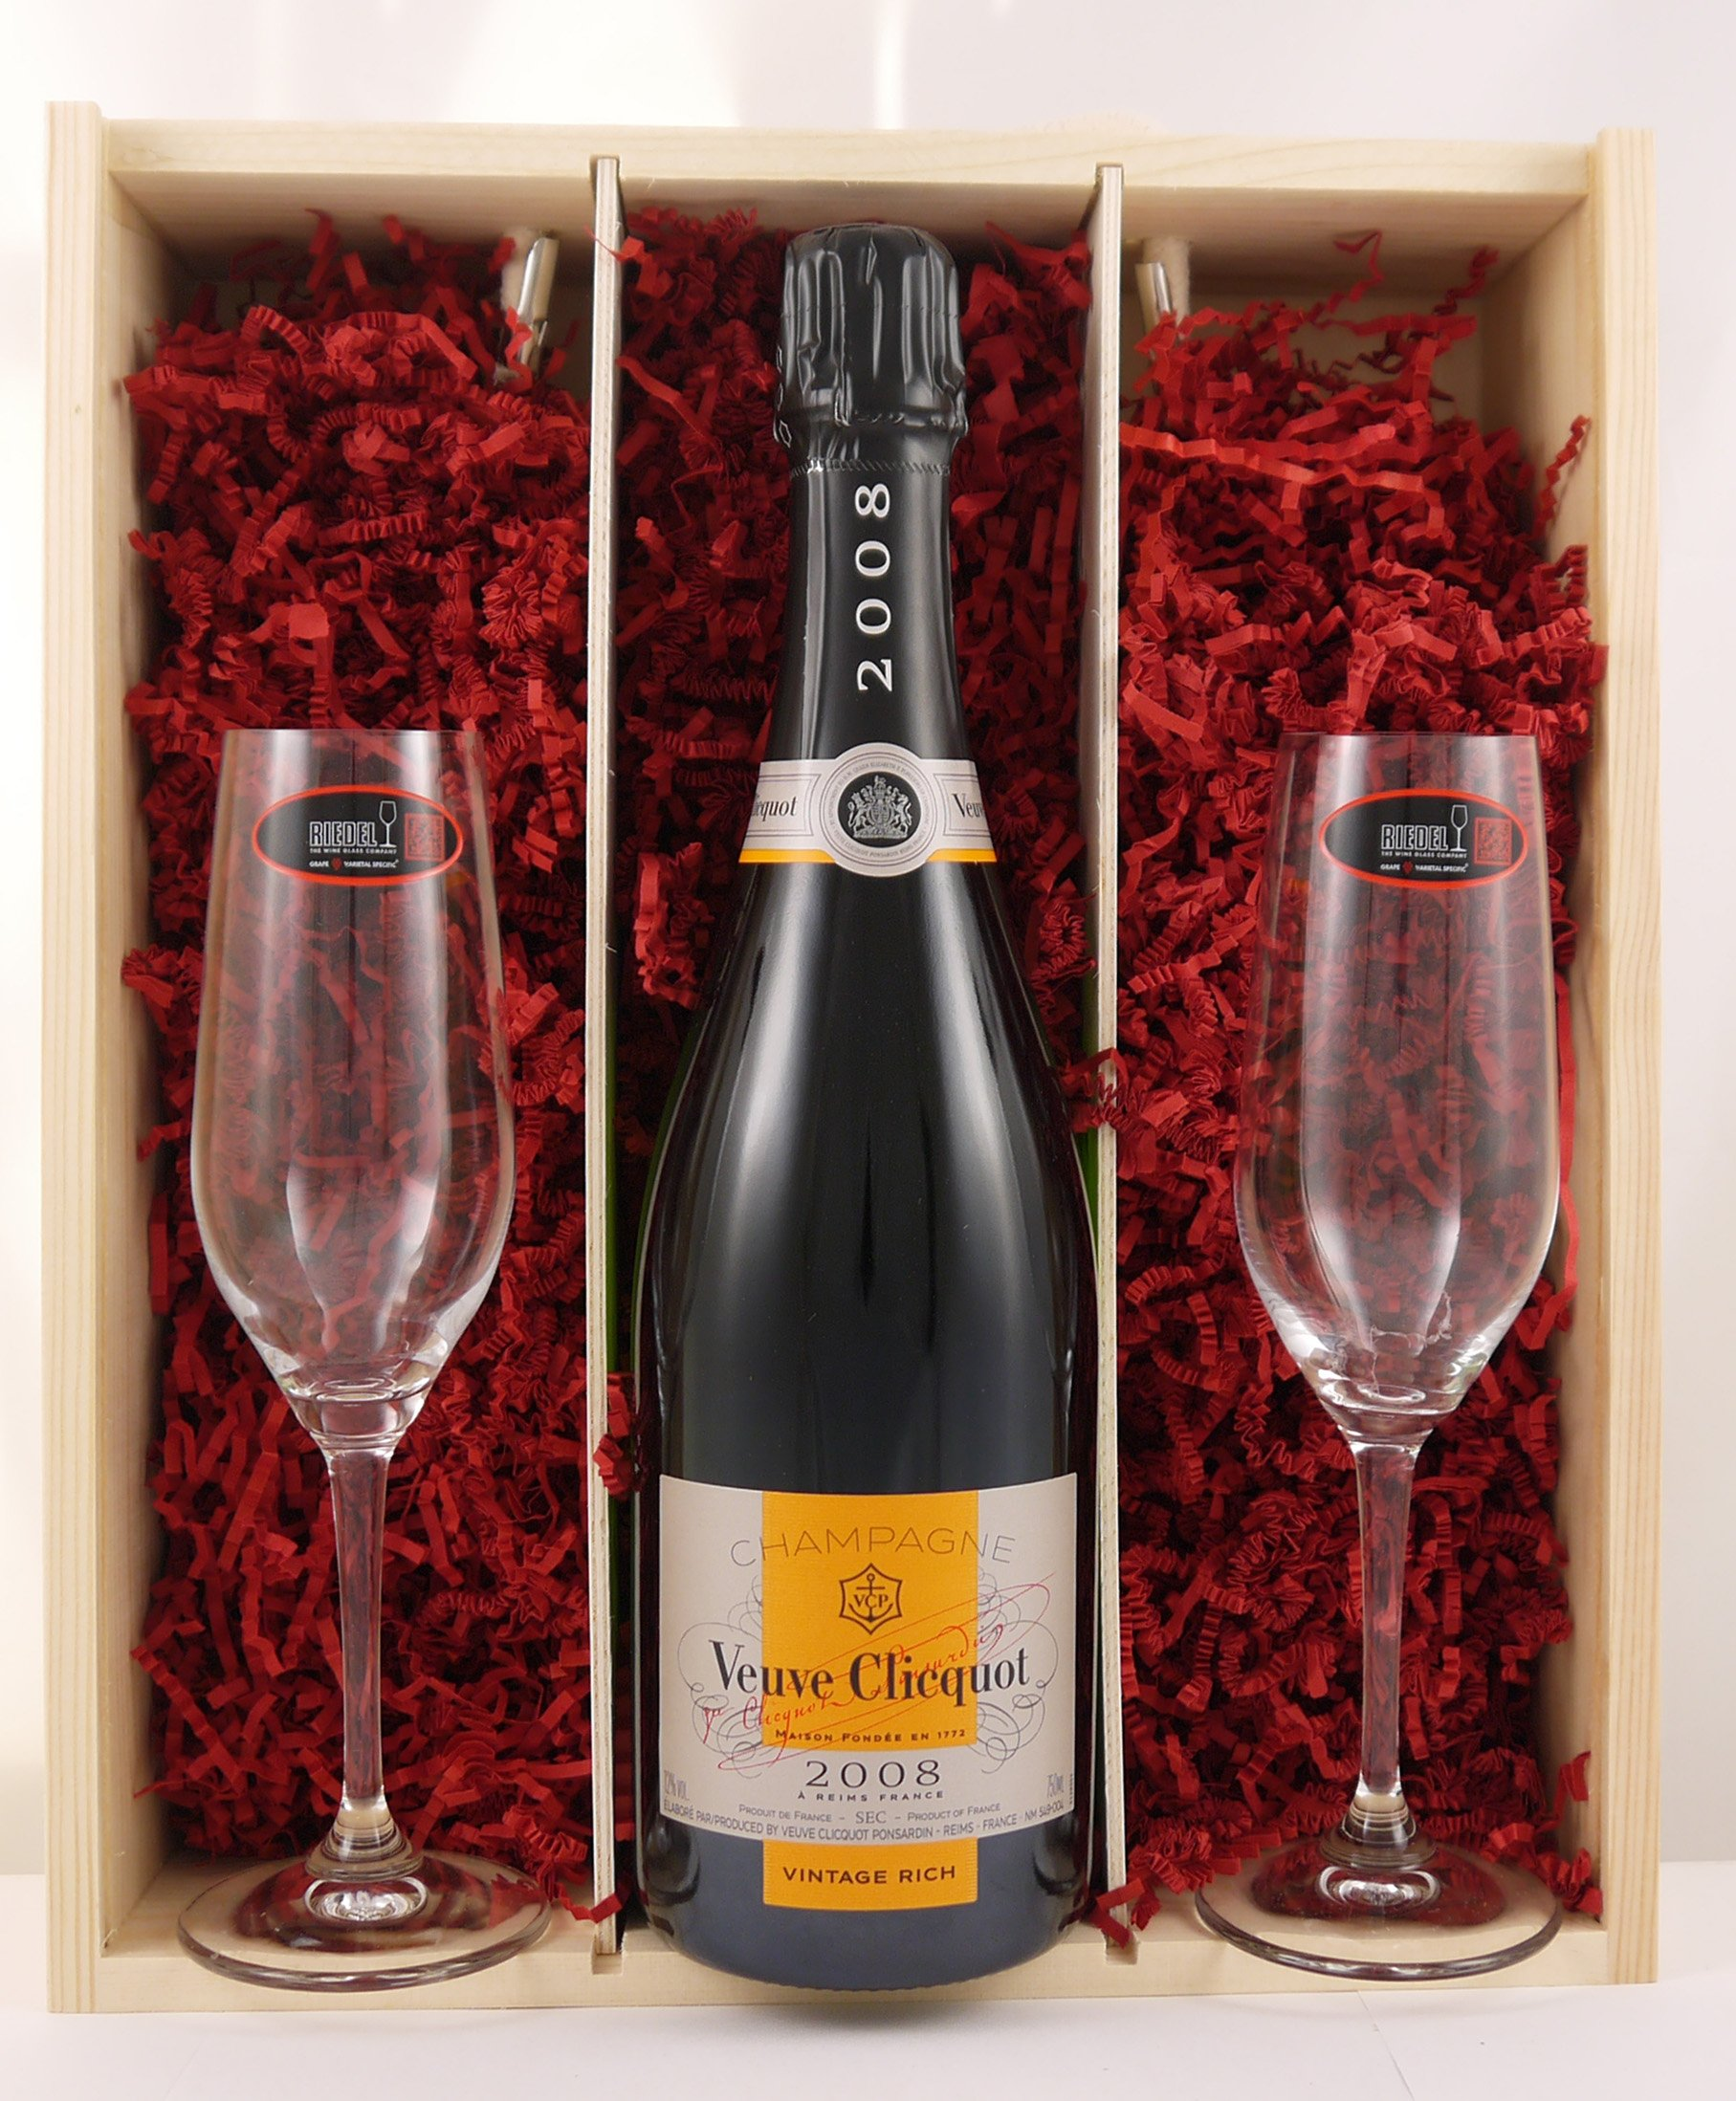 Veuve Clicquot Vintage Rich 2008 Champagne Gift set with two Riedel Crystal Champagne glasses in a wooden luxury gift box